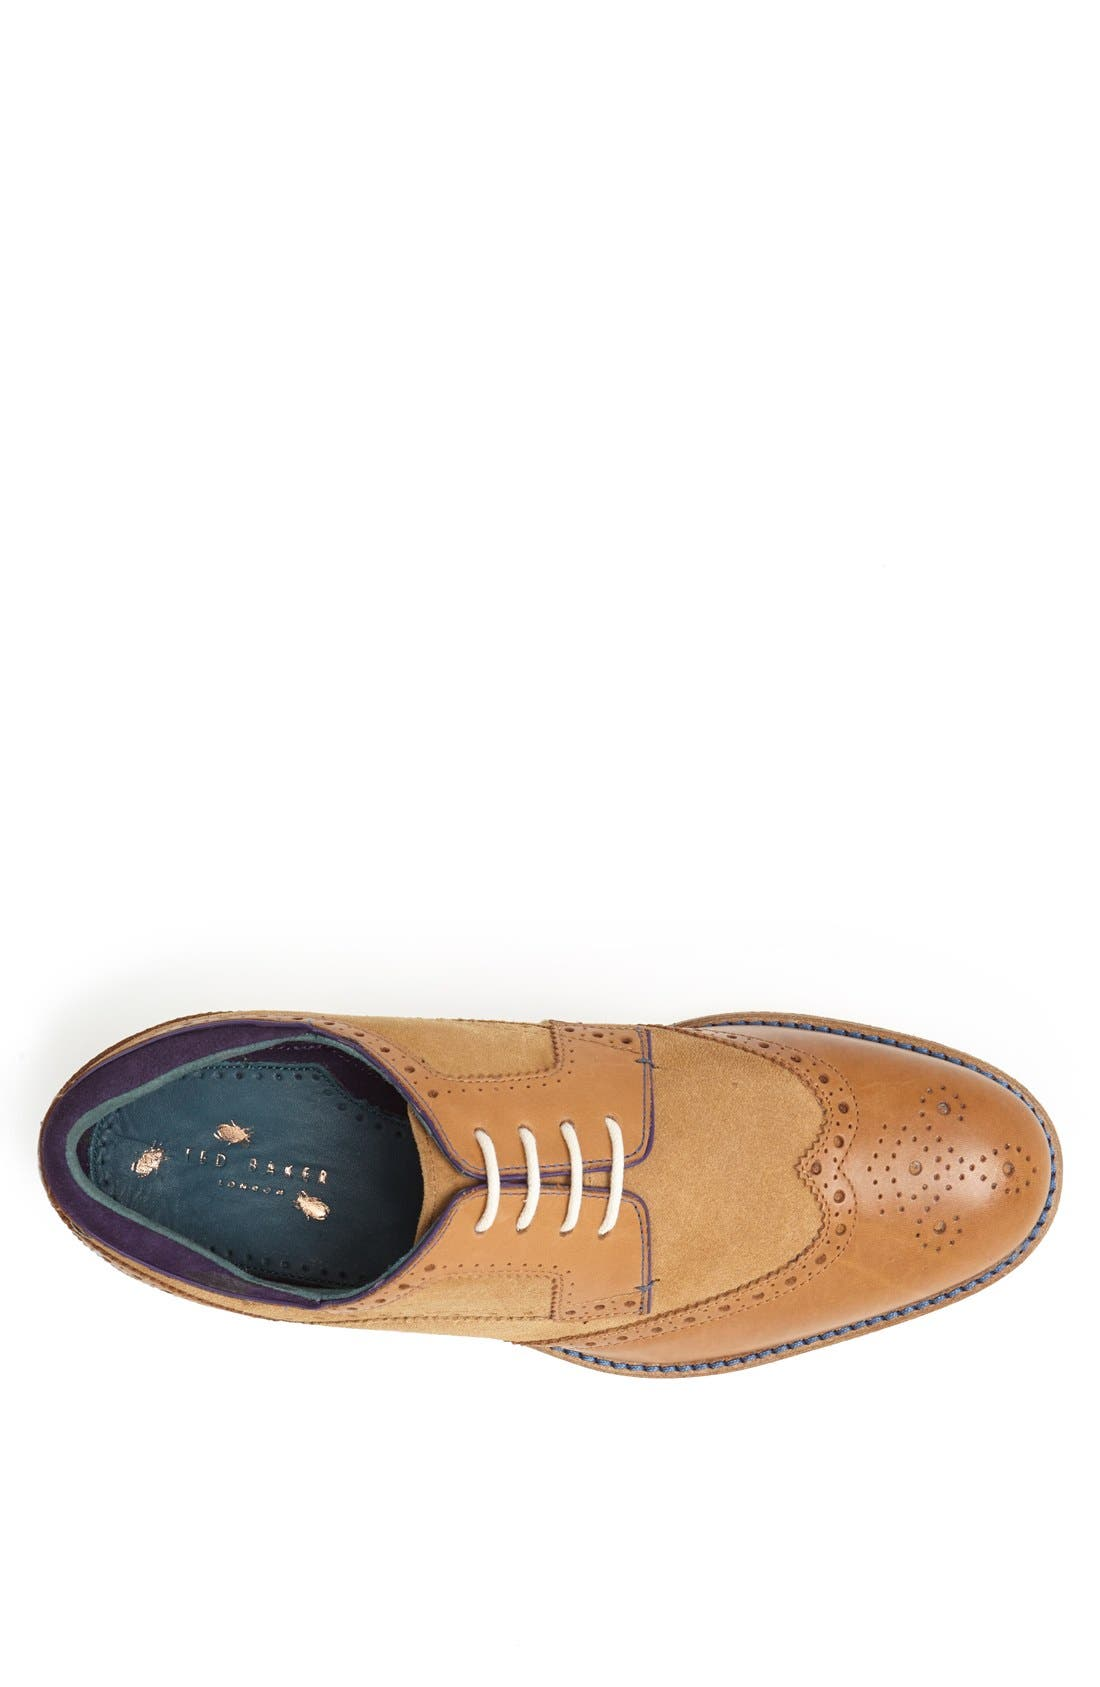 Alternate Image 3  - Ted Baker London 'Treey' Wingtip